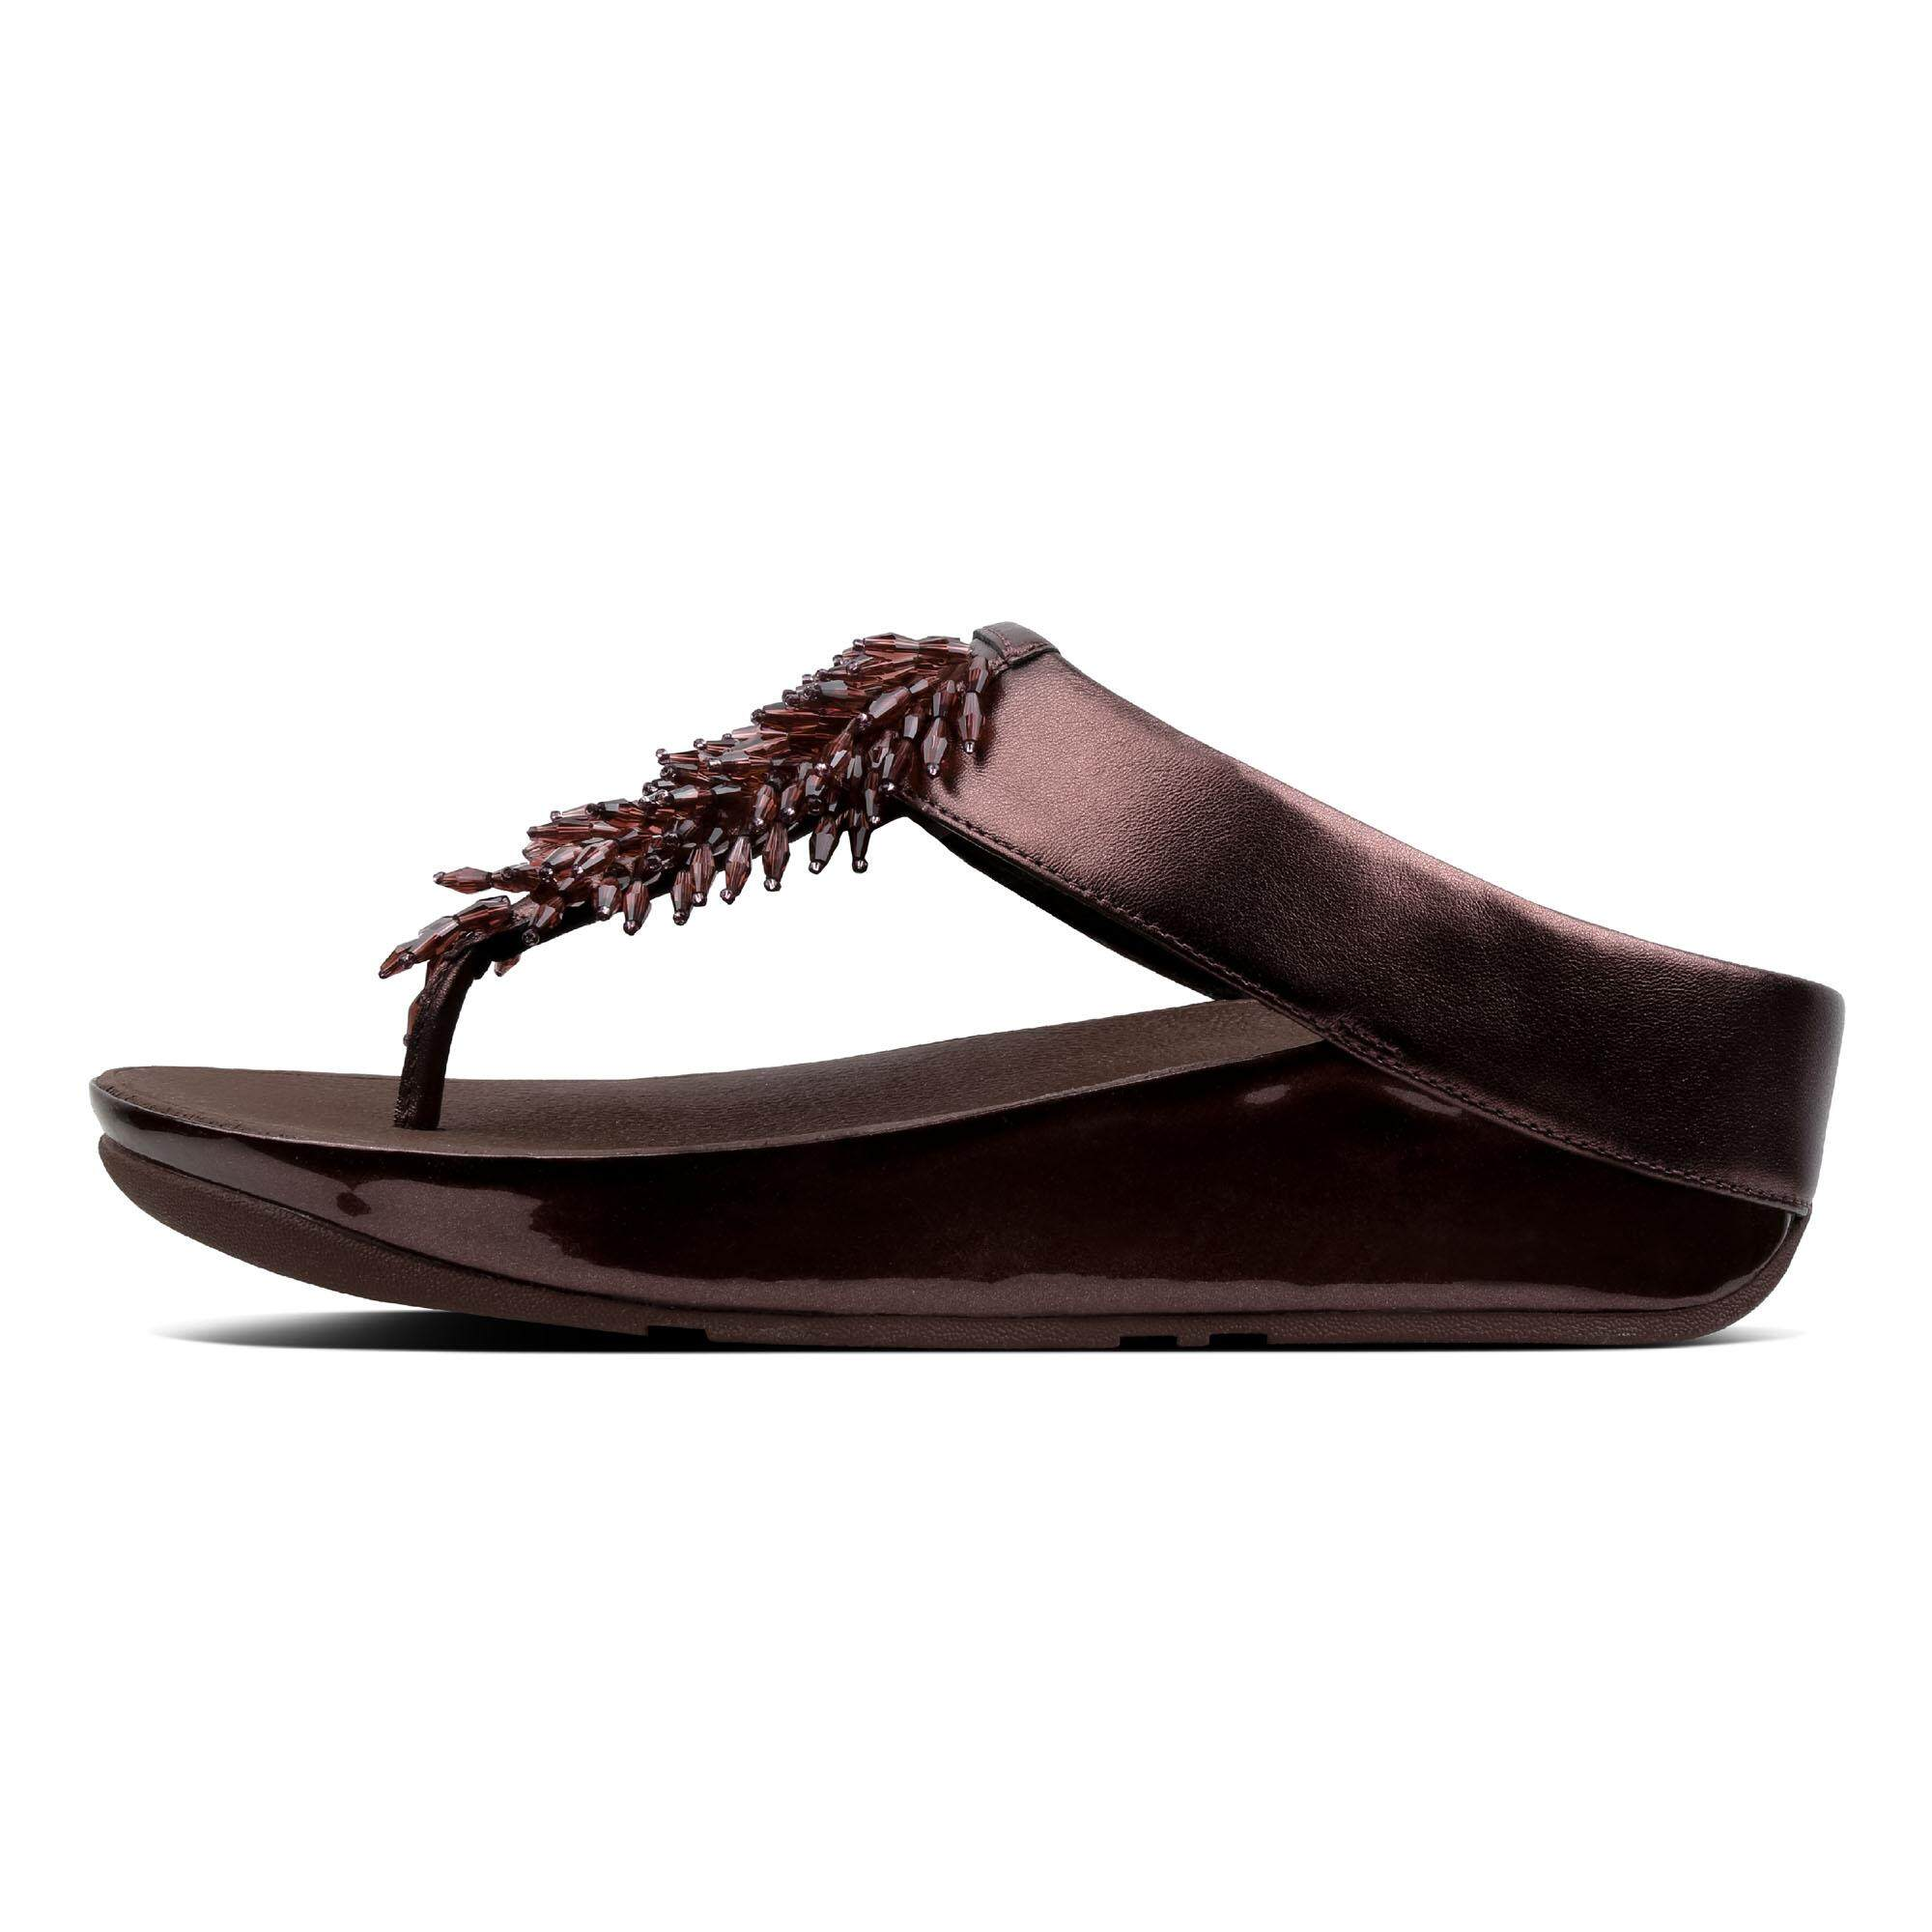 ded5b9d2099 Popular Fitflop Sandals for the Best Prices in Malaysia